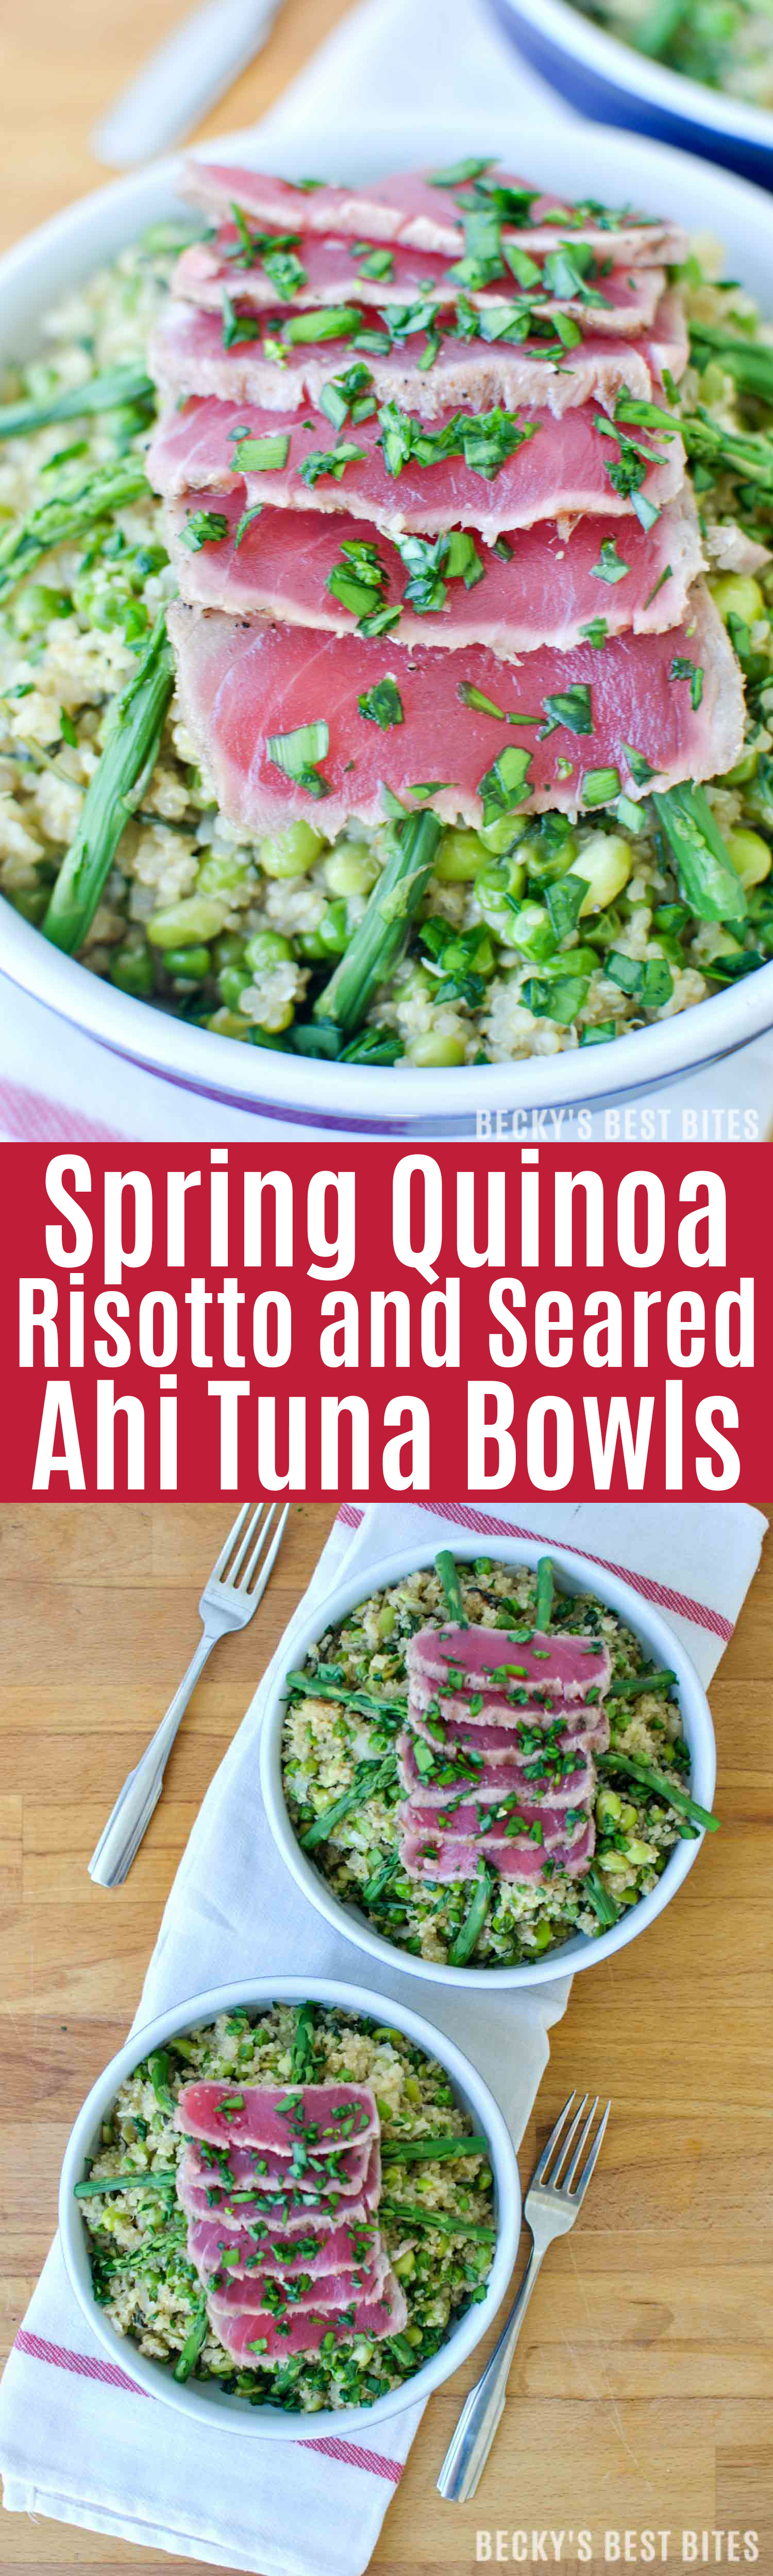 Spring Quinoa Risotto and Seared Ahi Tuna Bowls combine edamame, asparagus and arugula in a creamy rice dish topped with sushi quality,